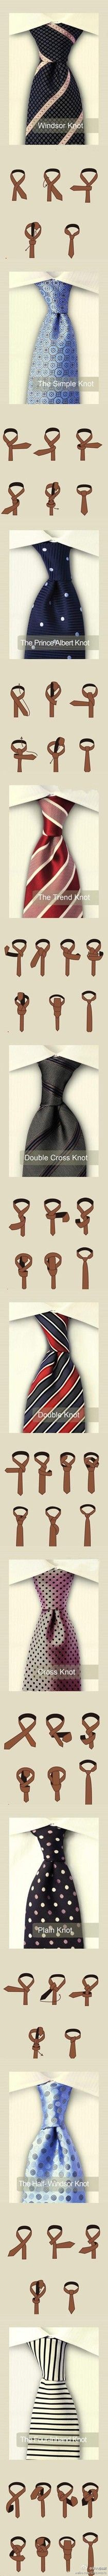 Tie Knots~~~good to know for the future! (just in case) Dandy, Just In Case, Just For You, Do It Yourself Fashion, Next Wedding, Wedding Dress, Retro Pin Up, My Guy, Mode Inspiration